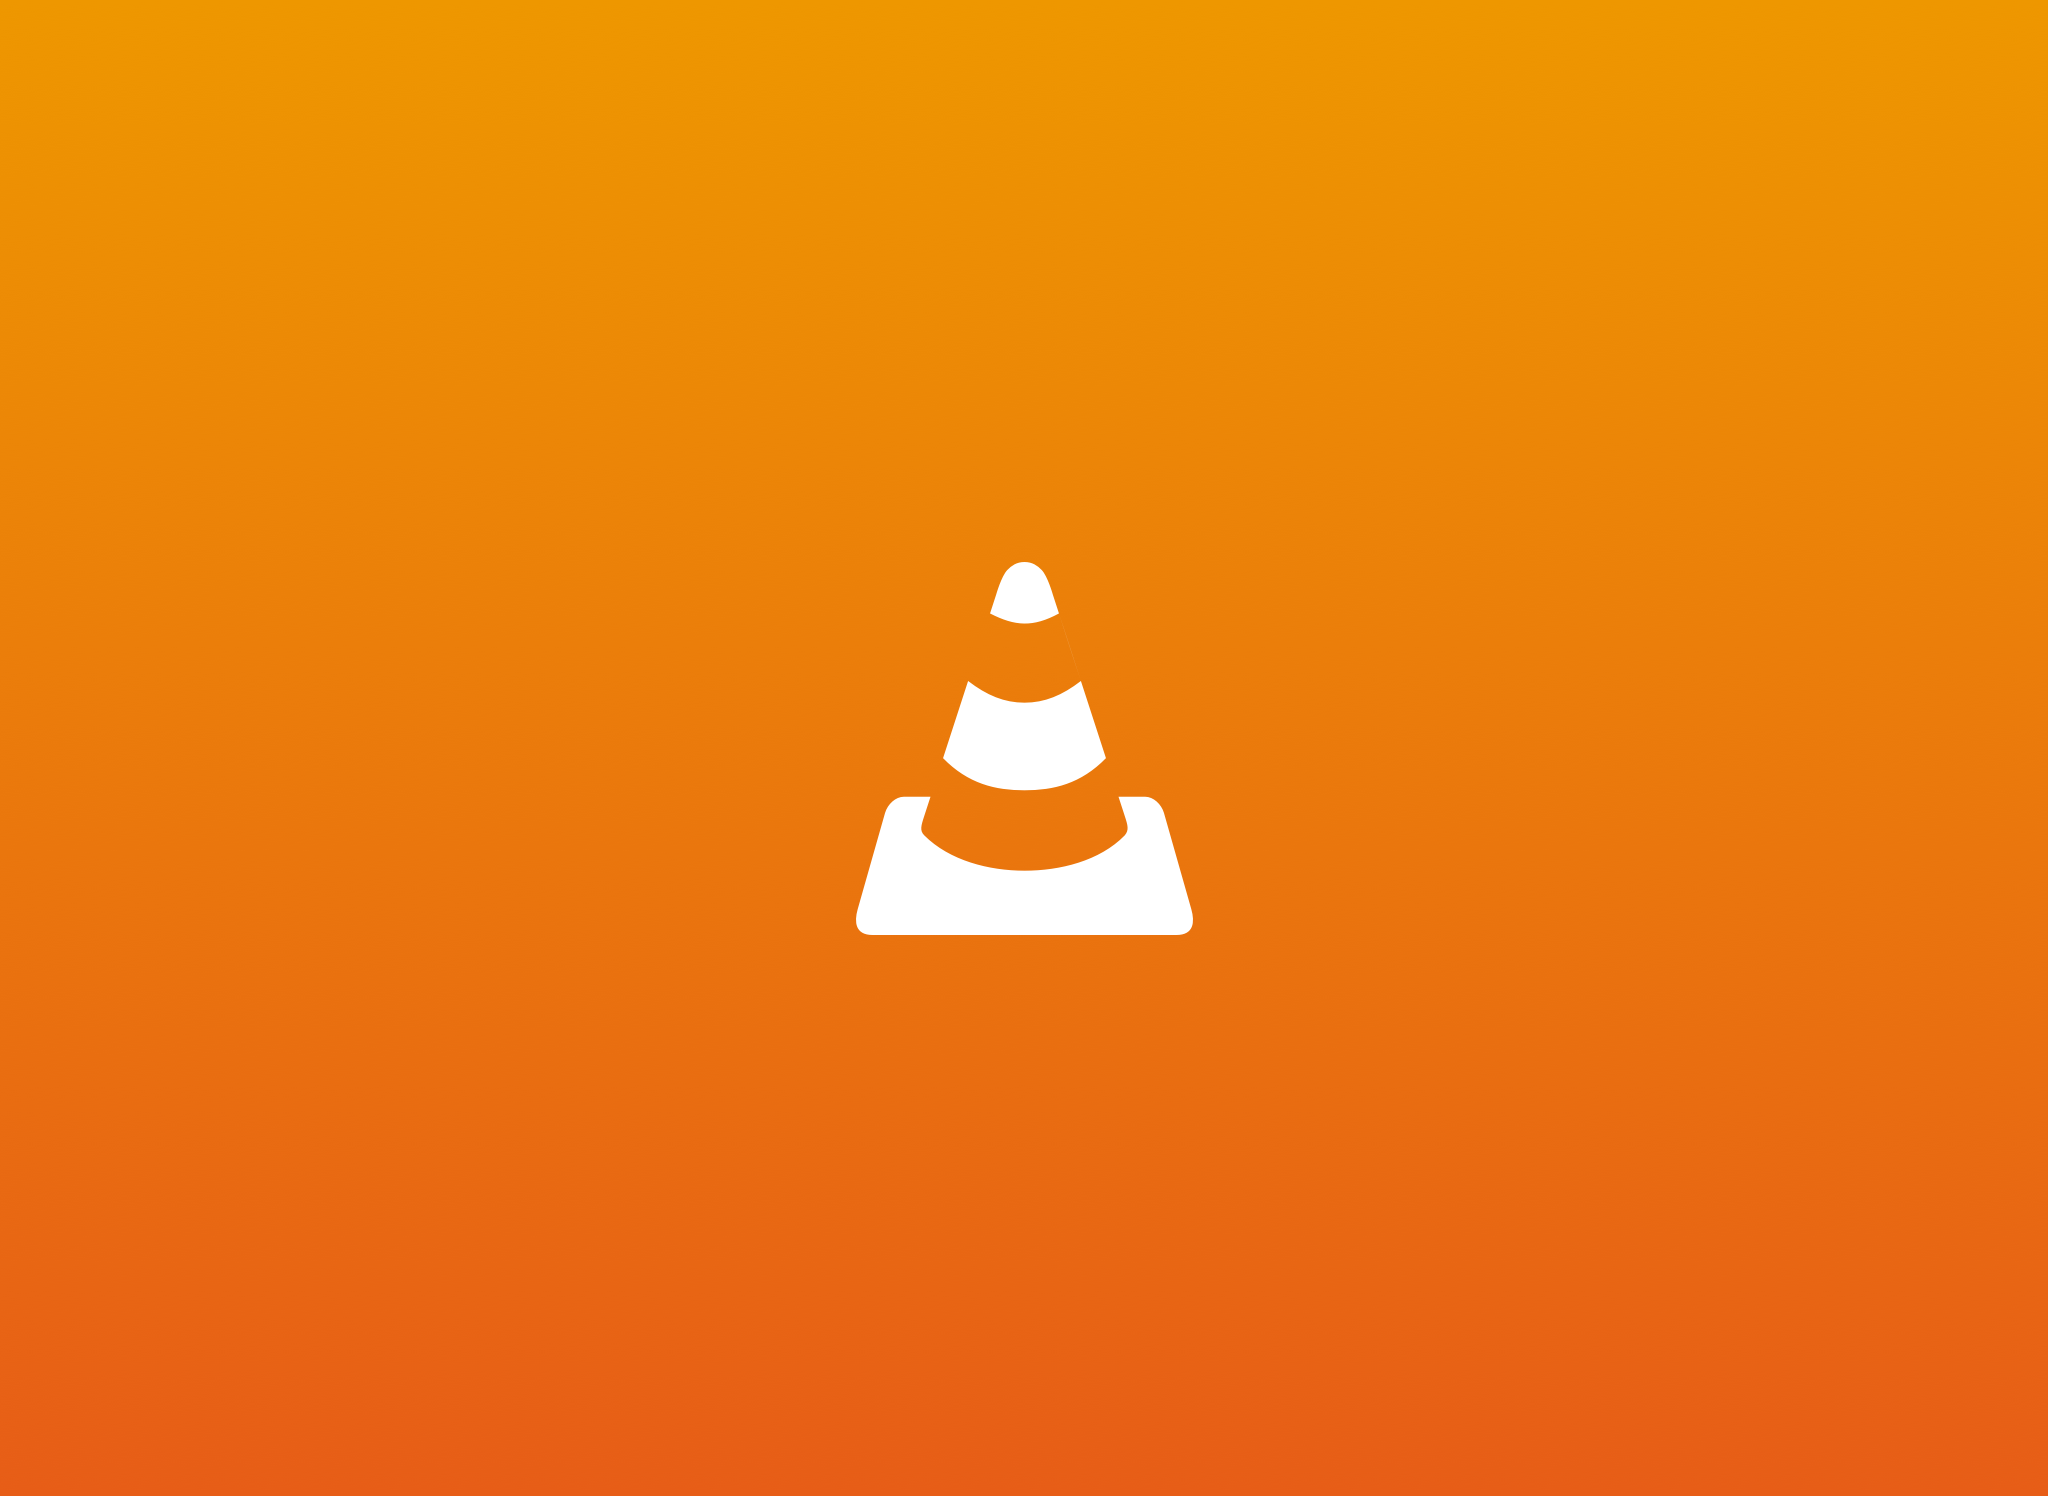 vlc-ios/Images.xcassets/LaunchImage.launchimage/iPad-ExcludeStatusBar-Landscape@2x.png